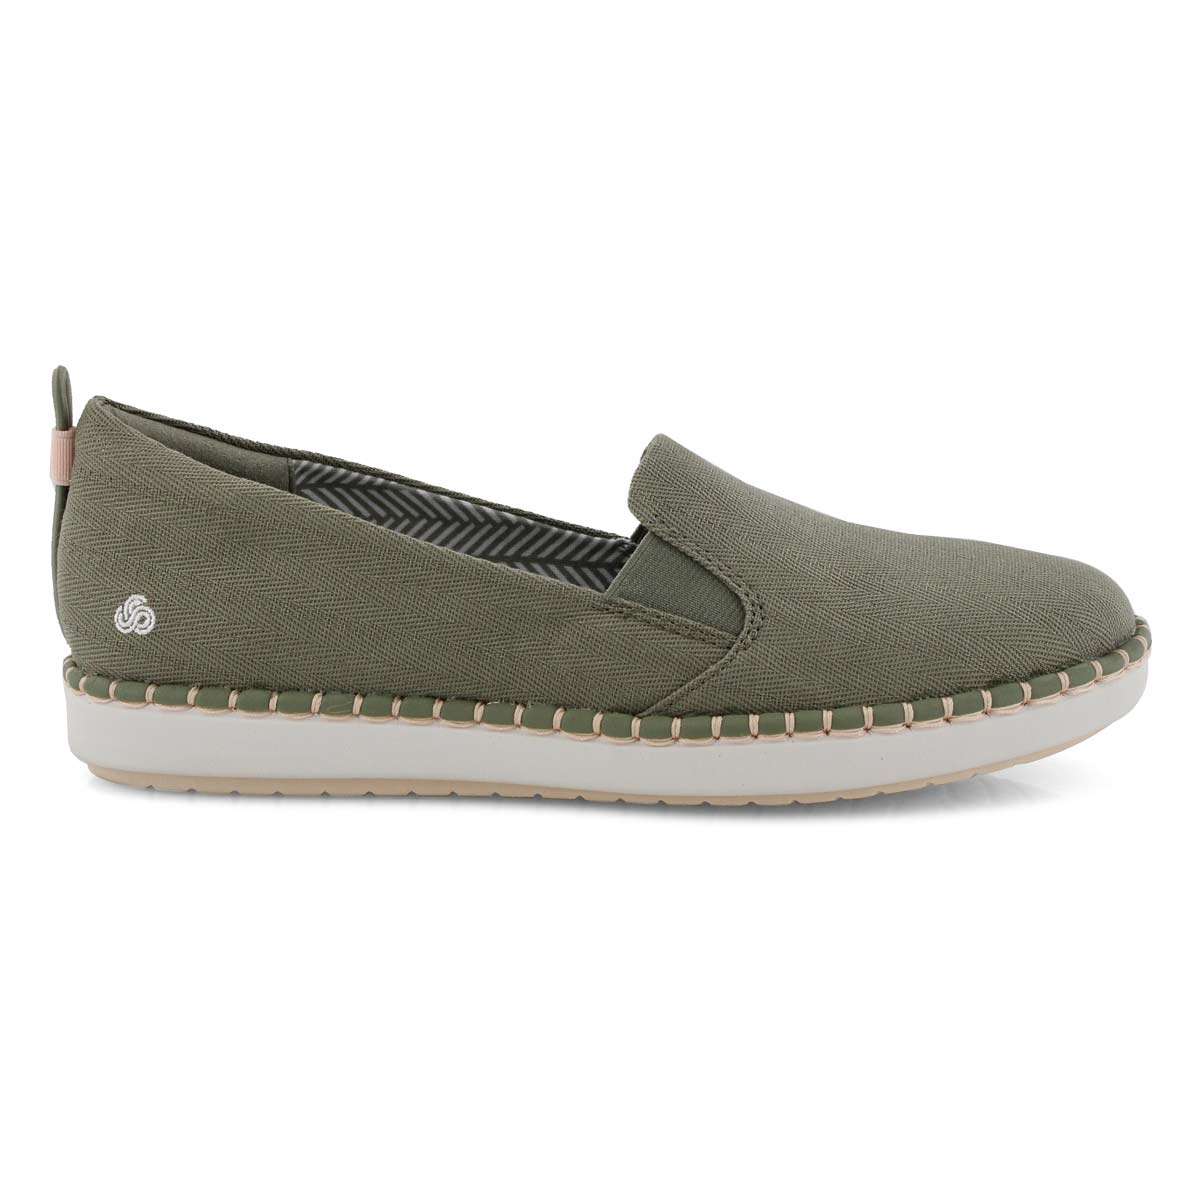 35537a7bea43 Clarks Women s STEP GLOW SLIP olive casual lo